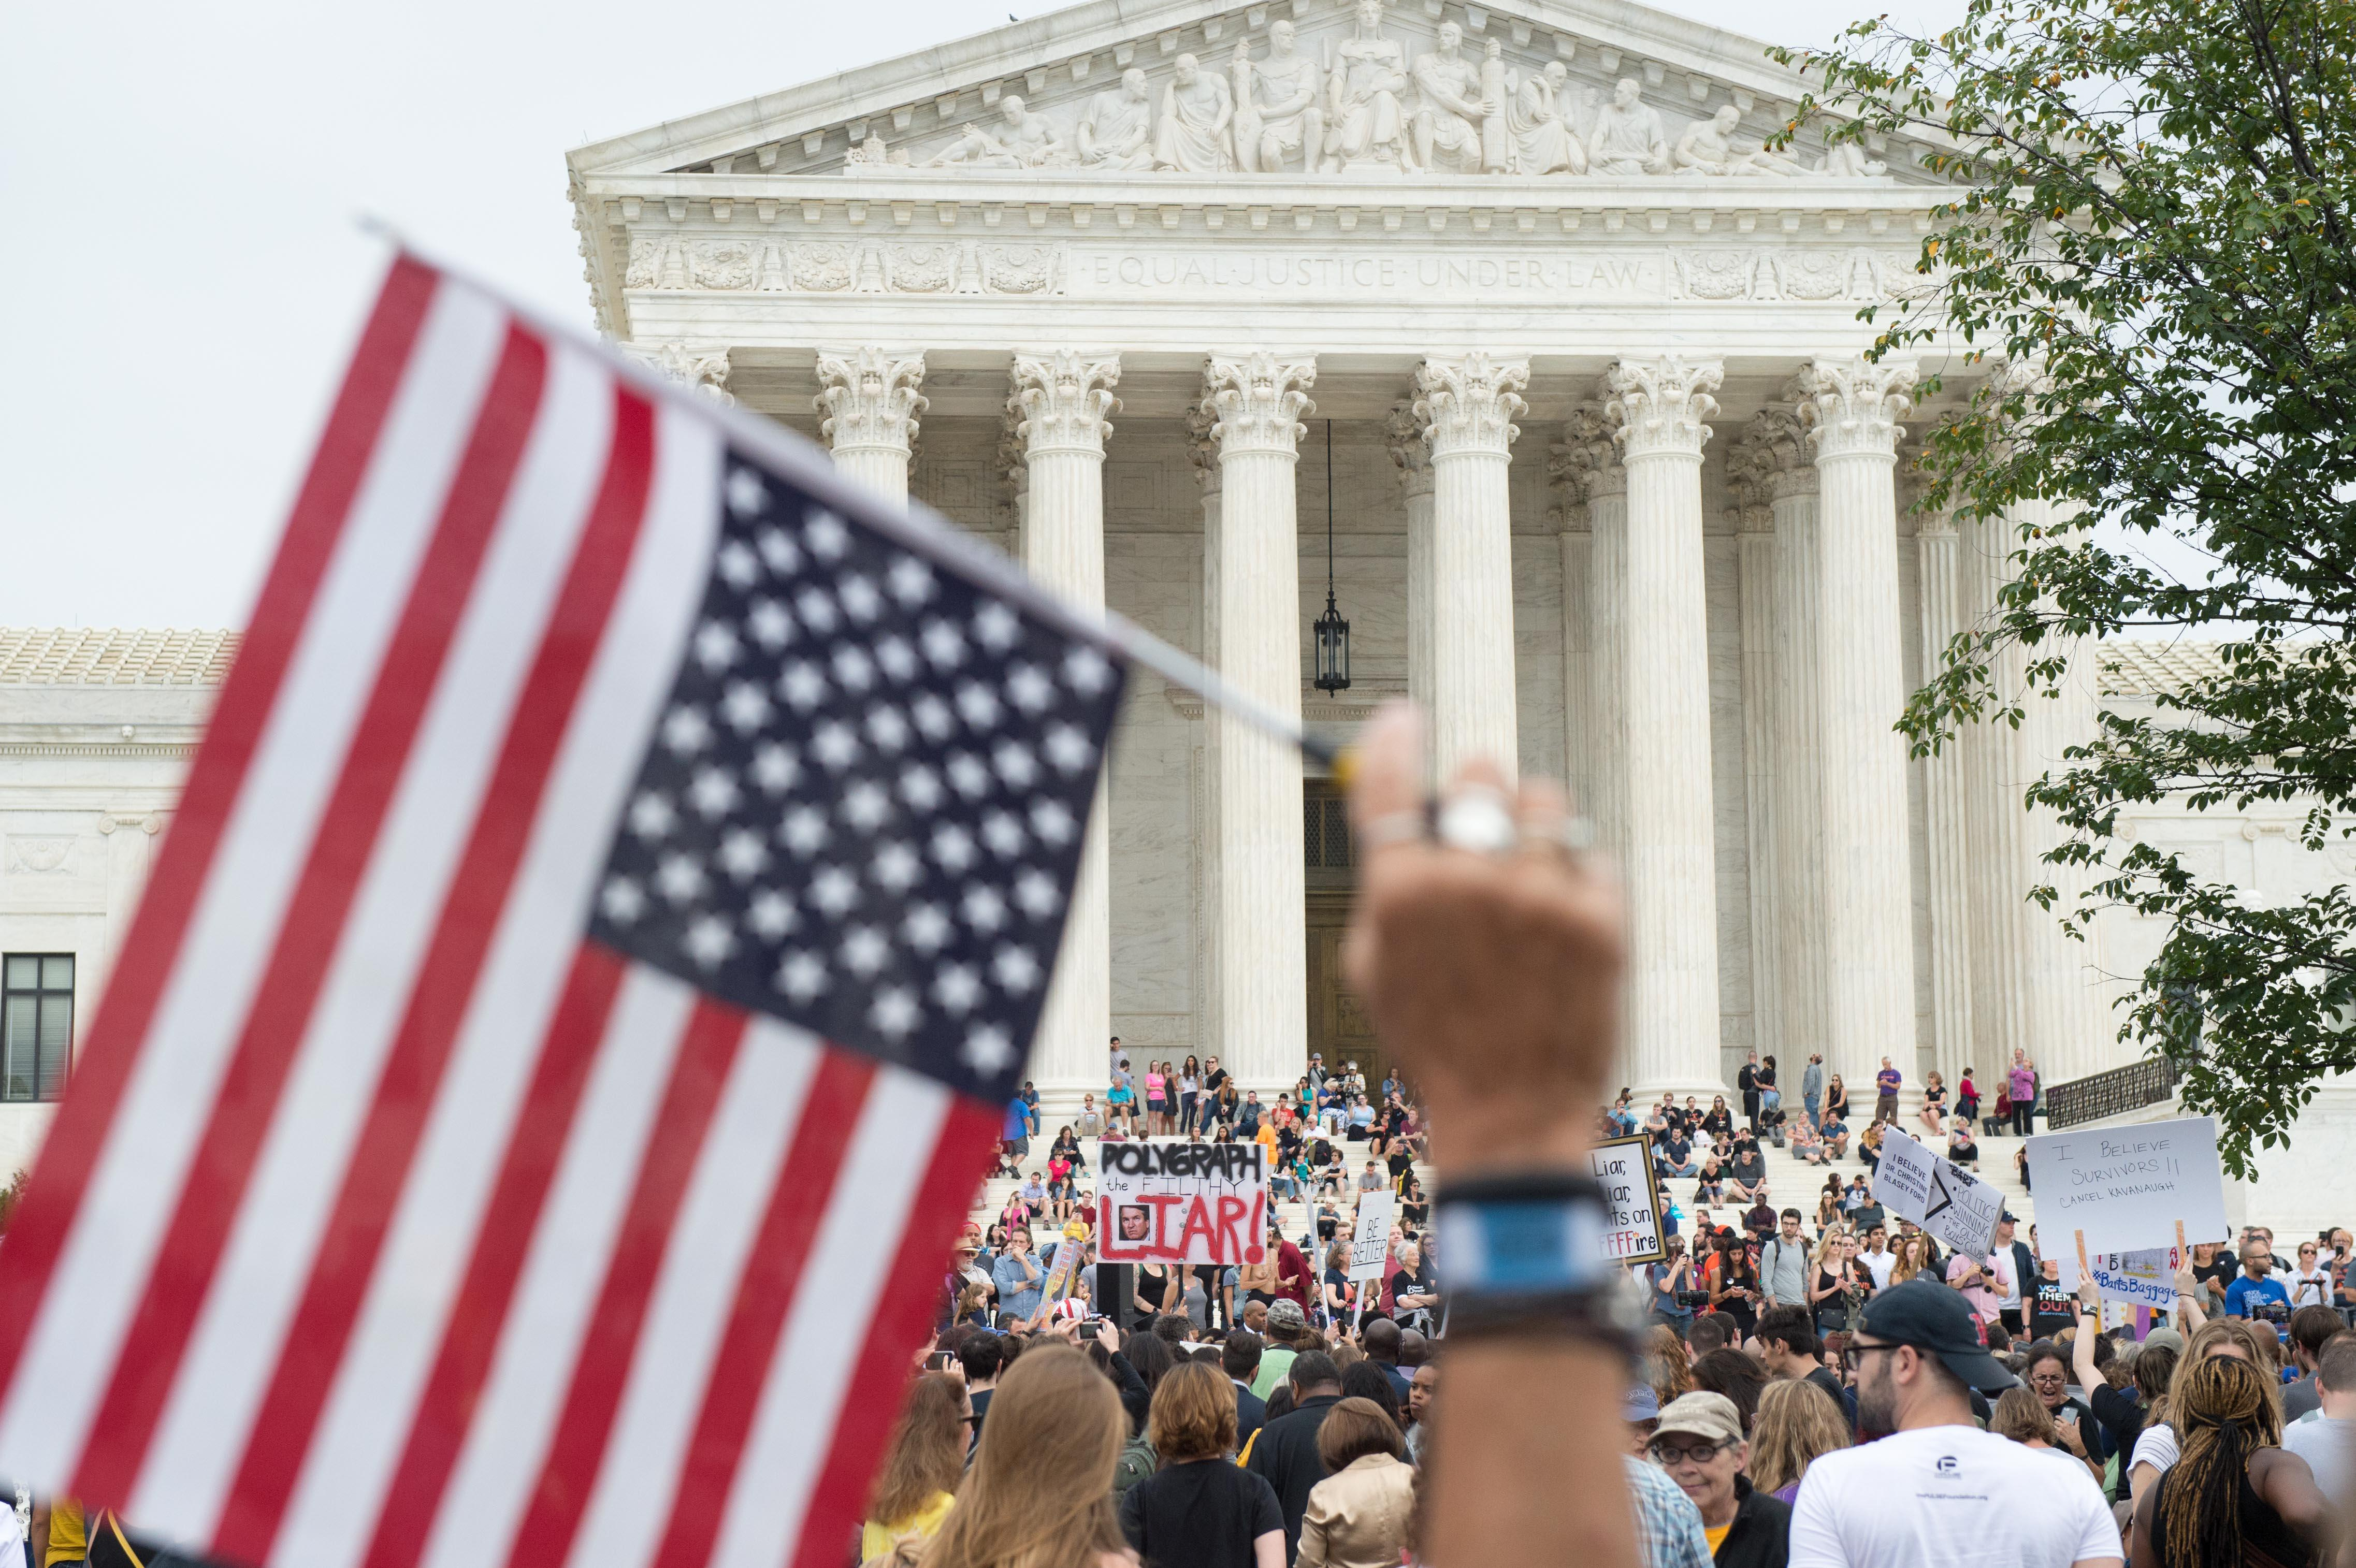 A crowd of protesters gather and hold signs in front of the Supreme Court building. In the foreground a hand holds up an American flag.